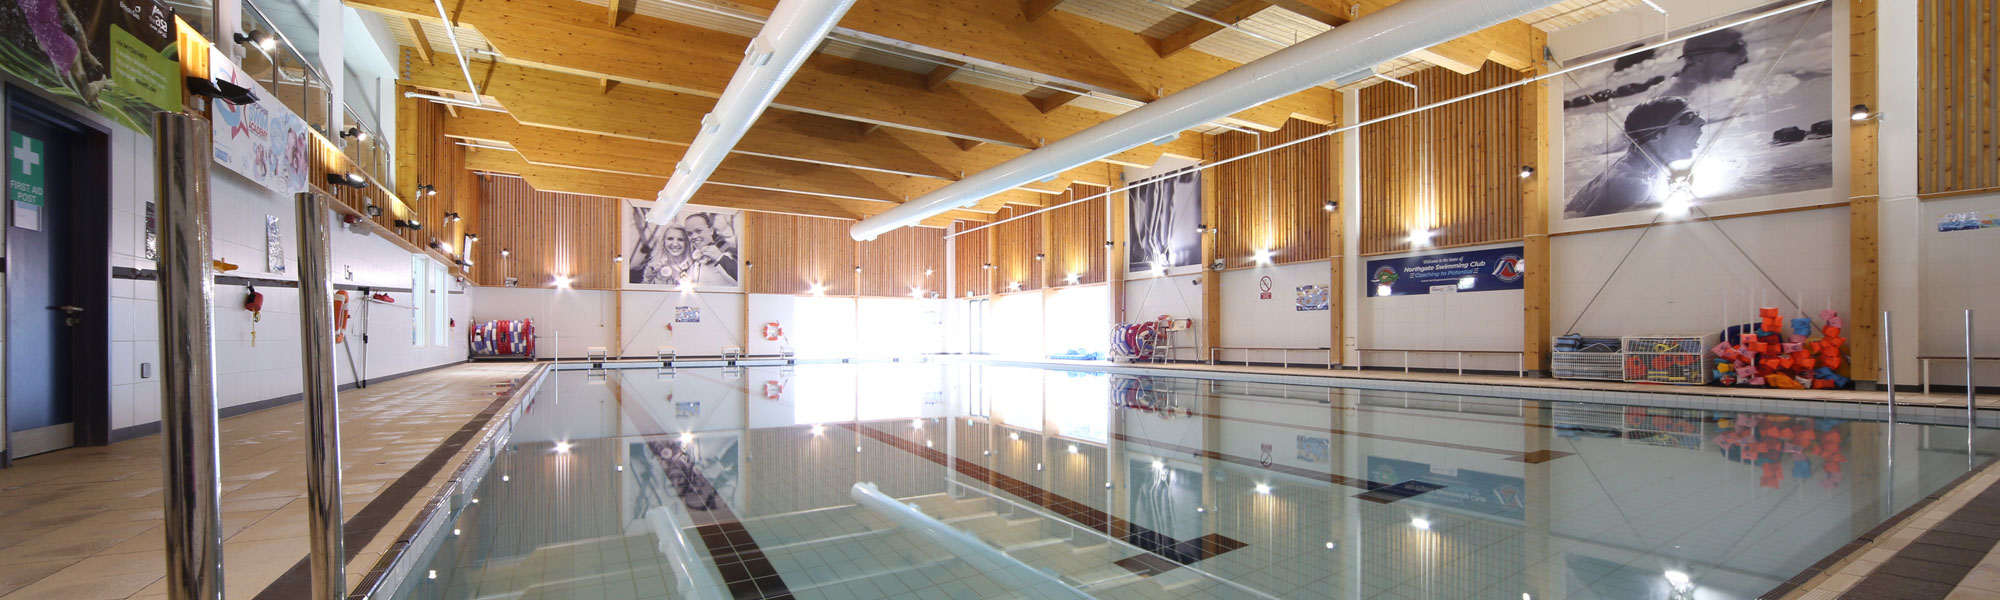 Swimming pool at William Brookes School in Much Wenlock, Shropshire